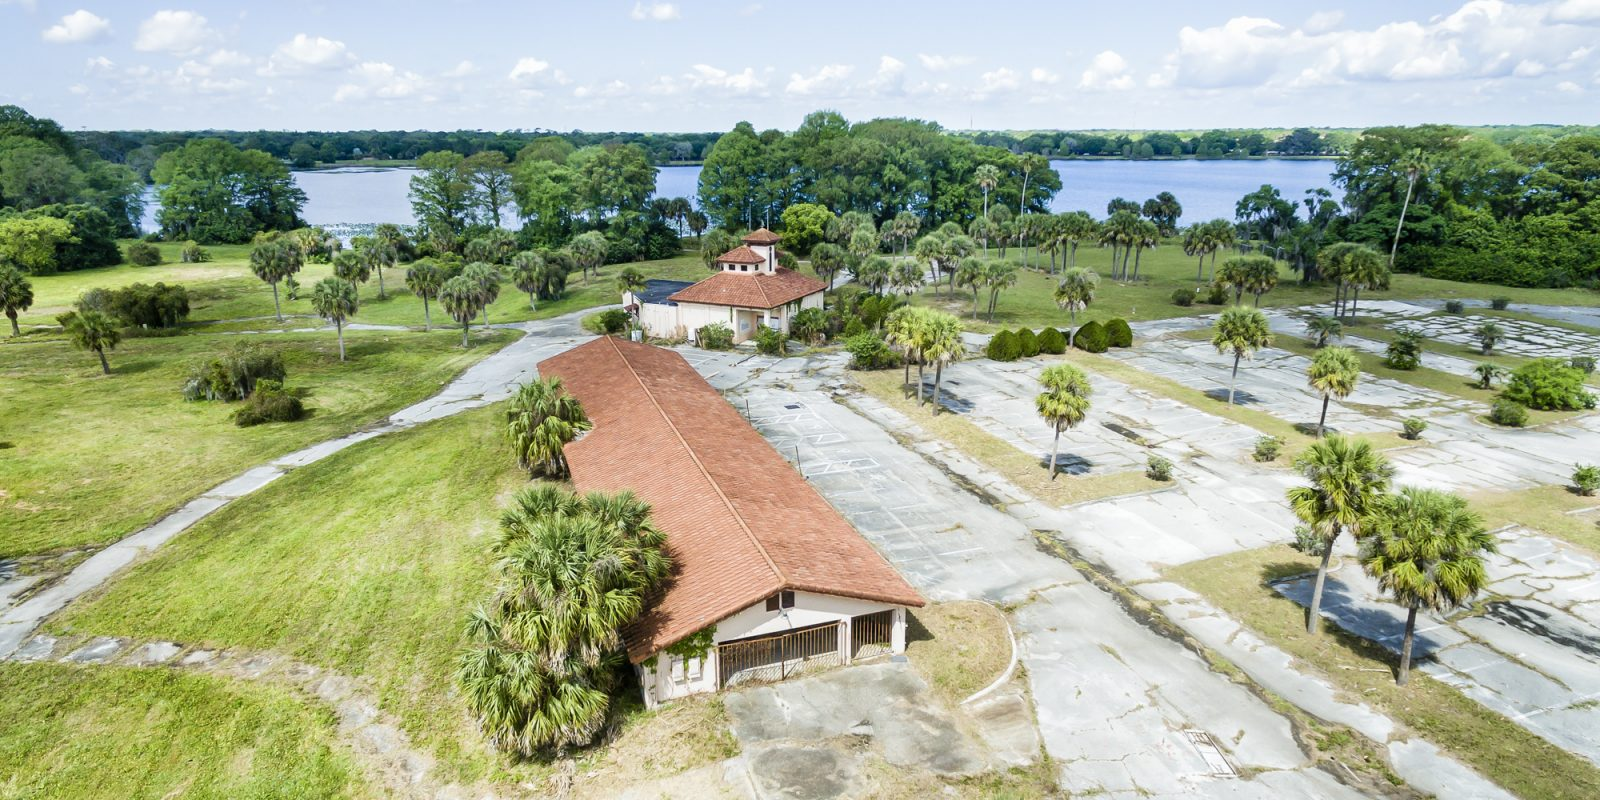 Current state of the former Lake Orlando Golf Club abandoned clubhouse immediately post acquisition with Lake Orlando in the background.